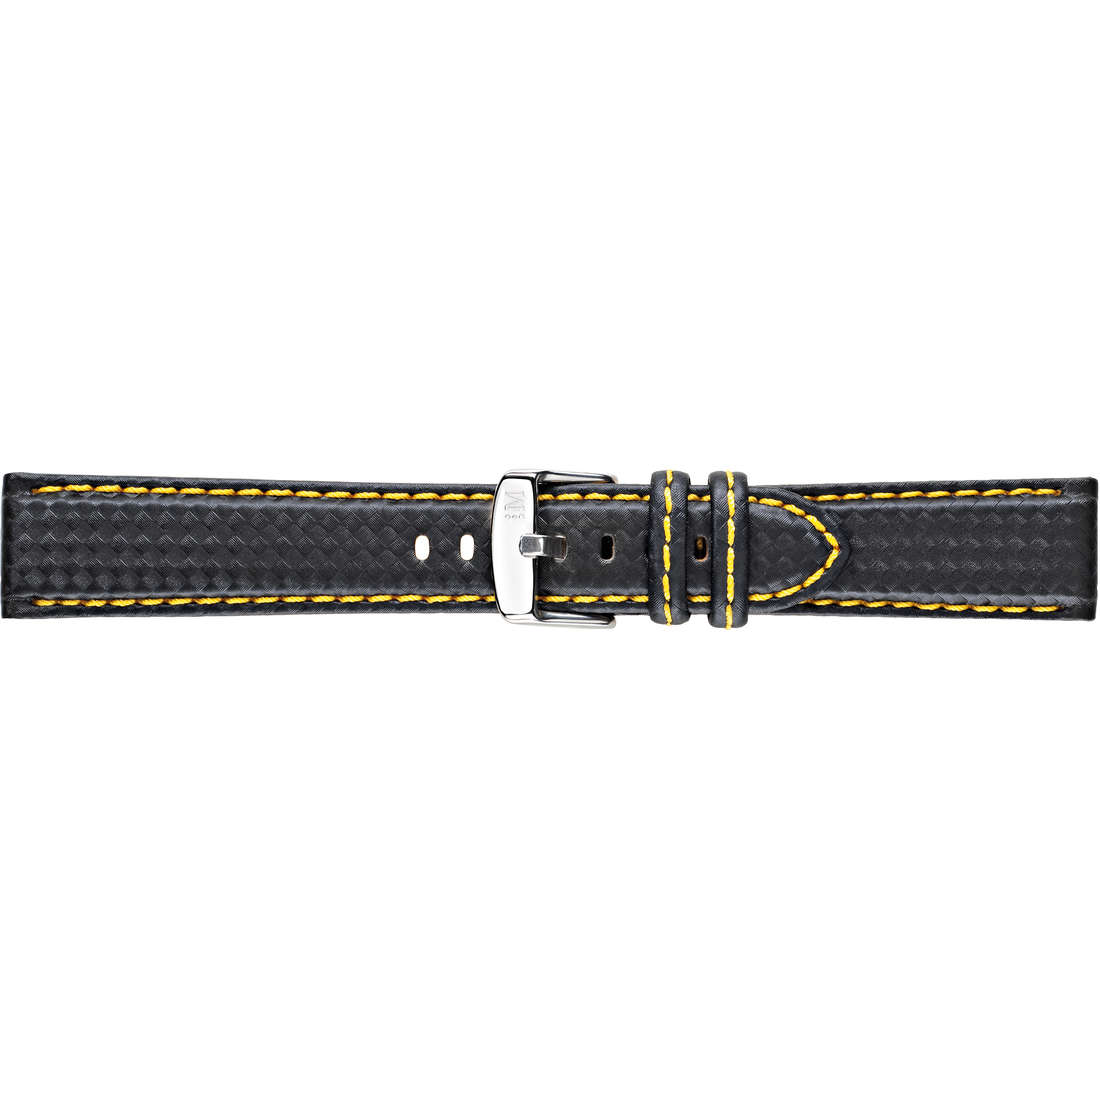 watch watch bands watch straps man Morellato Linea Sport A01U3586977897CR20